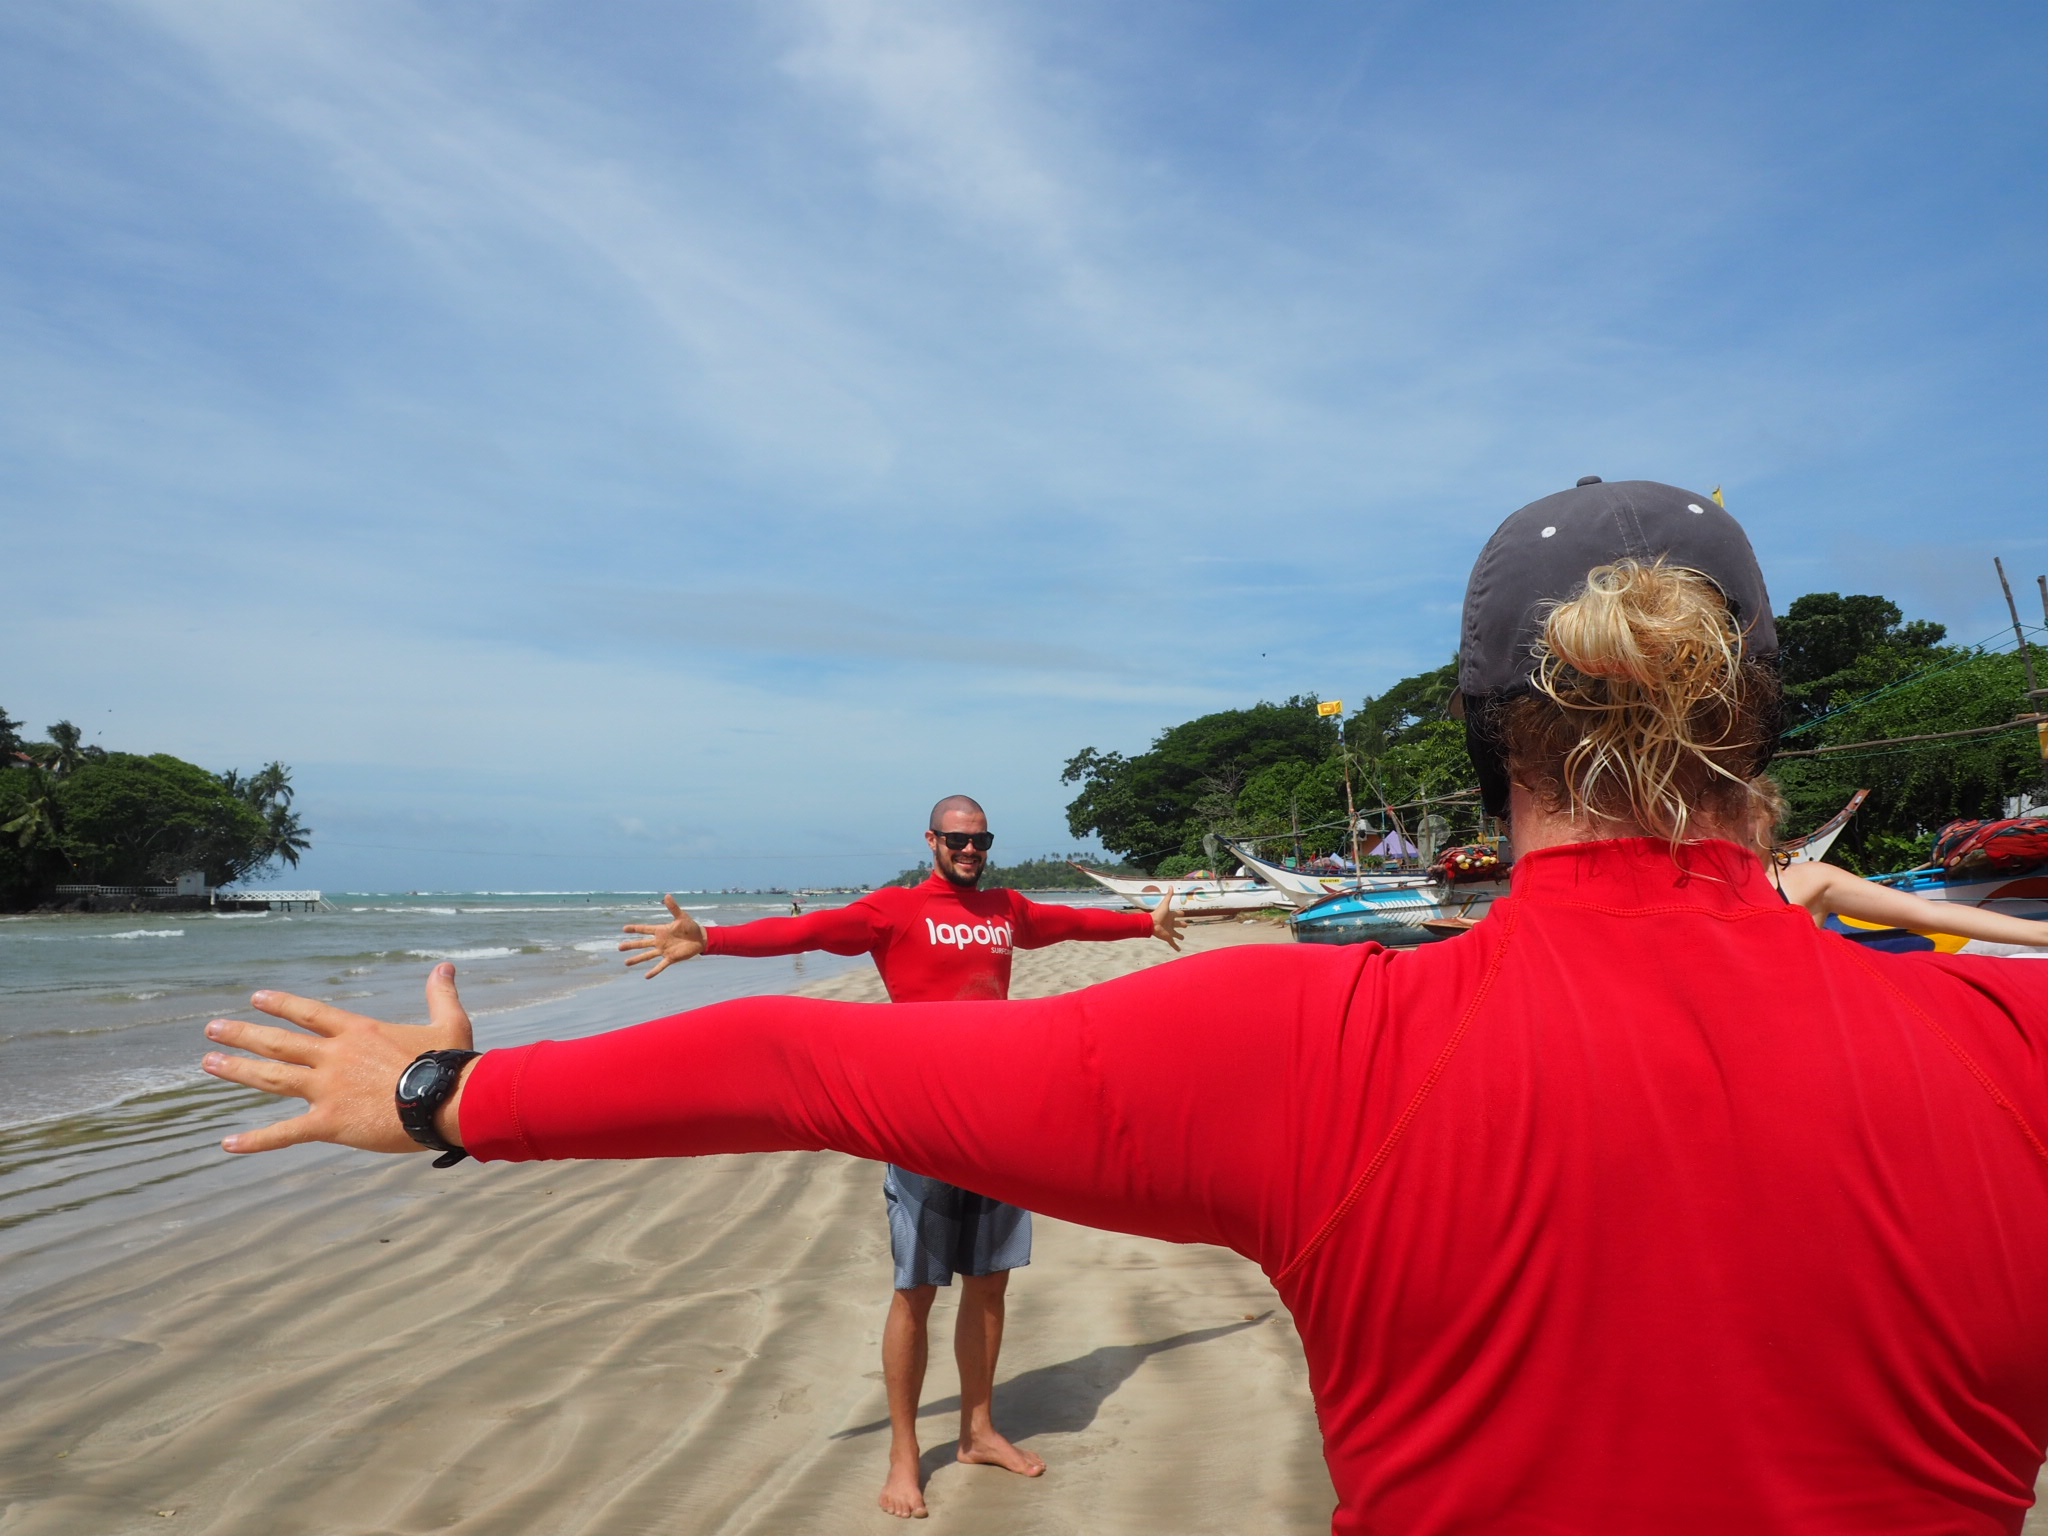 You know you're in for a tough surf session when your coach does a full warm up routine with you